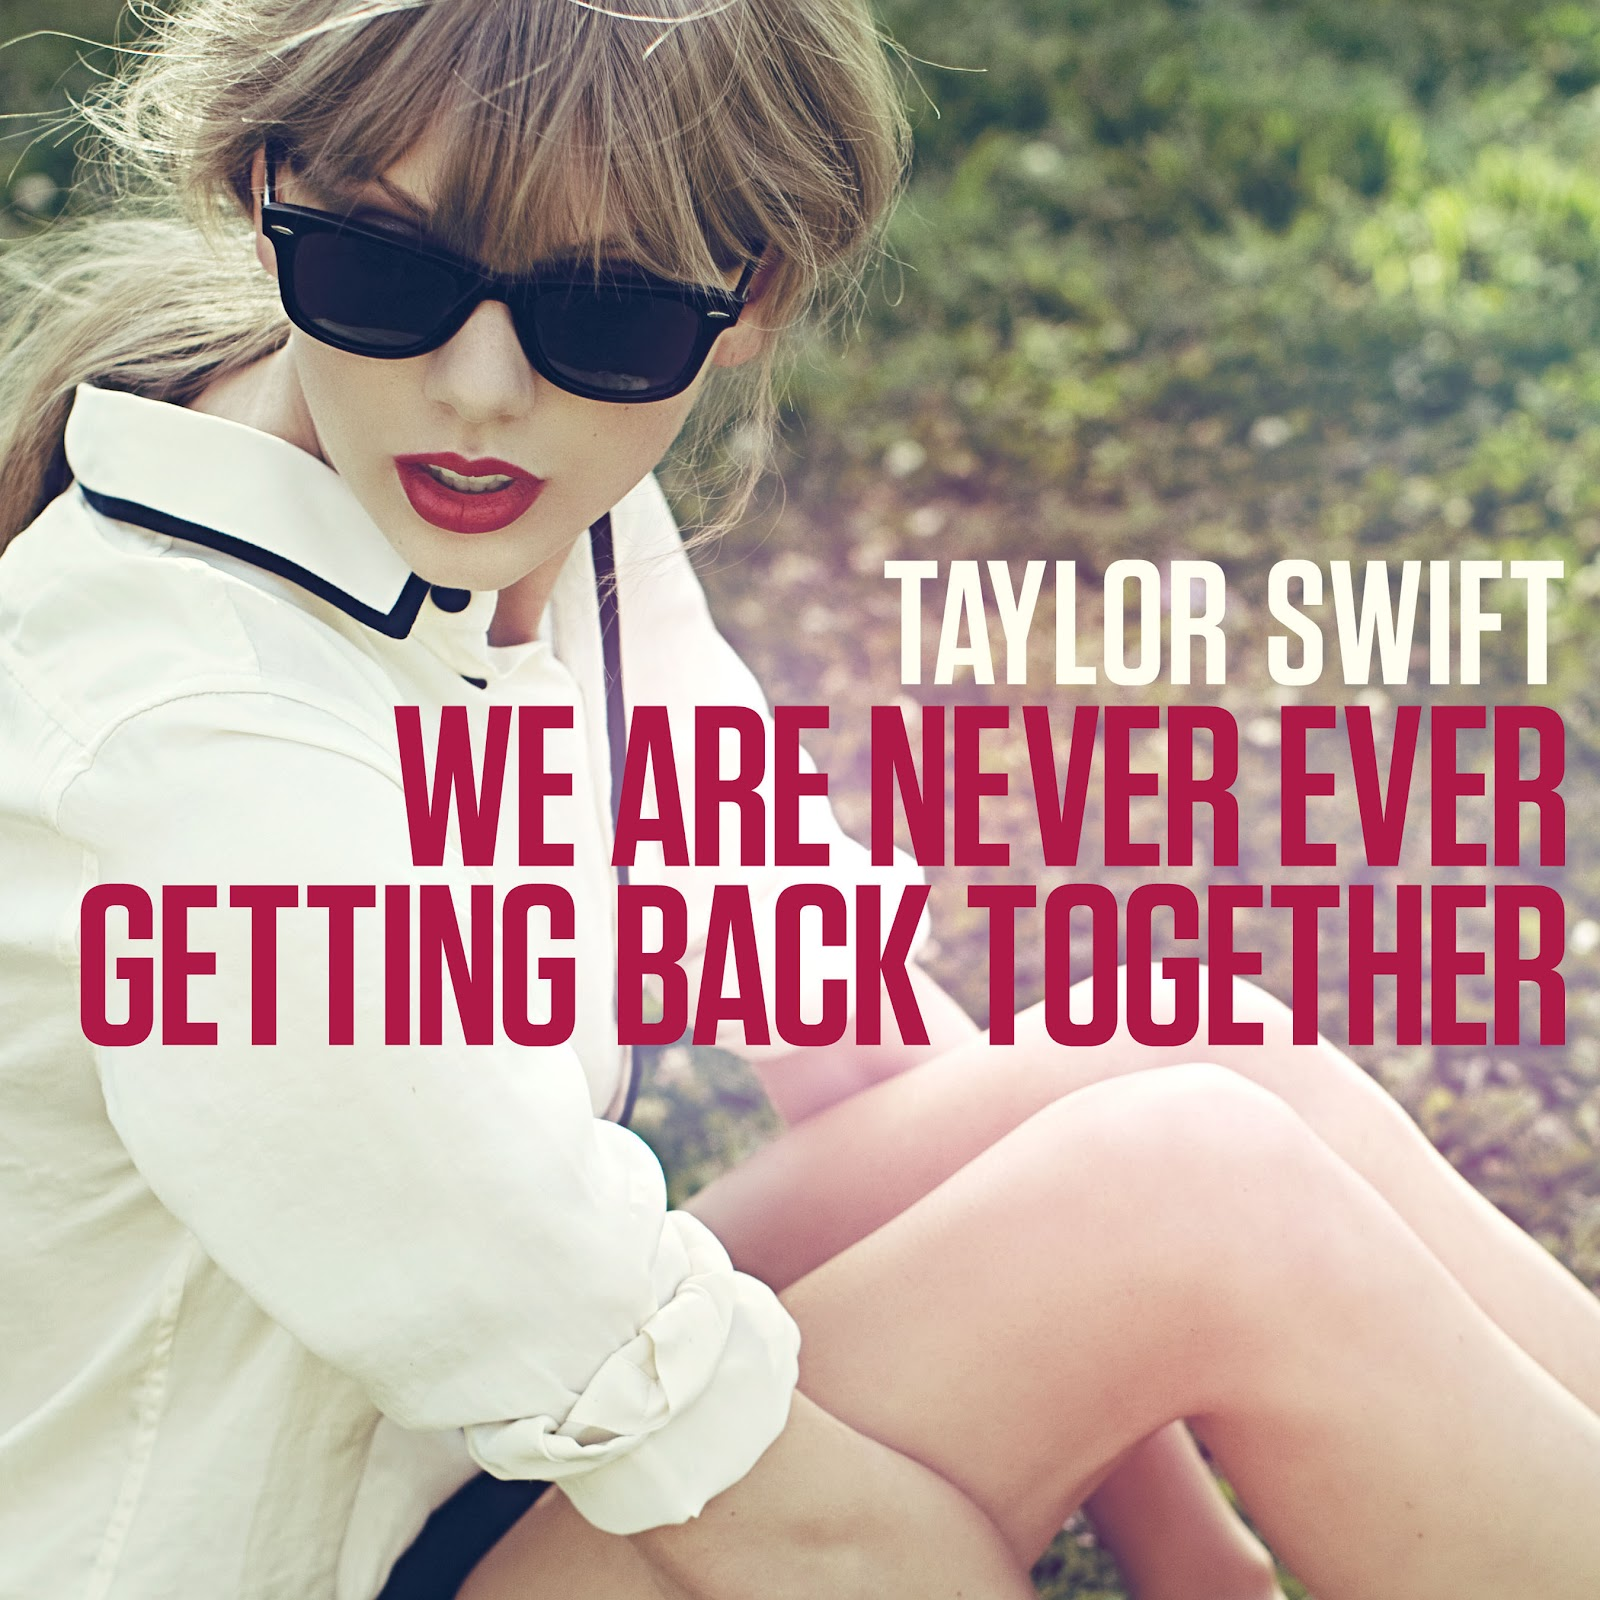 http://4.bp.blogspot.com/-ulNamz_7Ki0/UDa5ZKyP49I/AAAAAAAAB3M/QtE5EDgABBM/s1600/We+Are+Never+Ever+Getting+Back+Together+-+Taylor+Swift.jpg